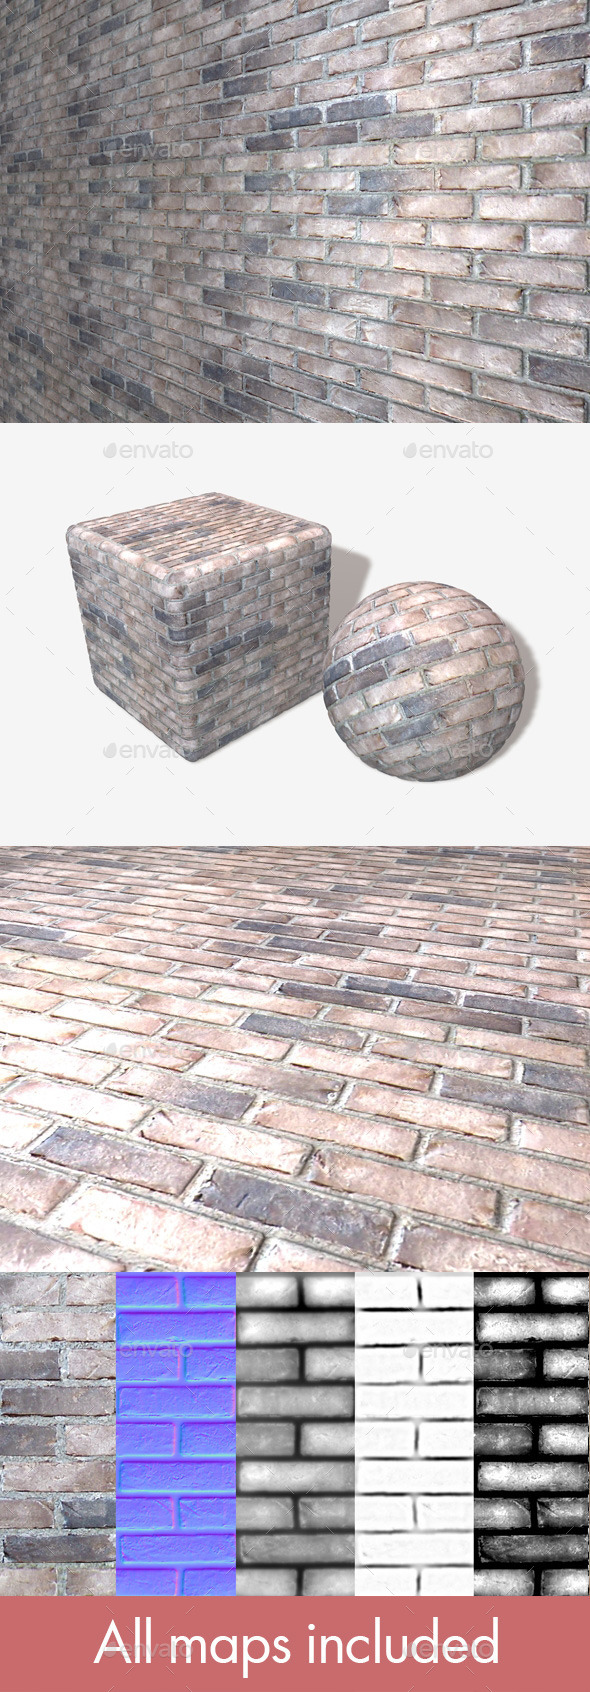 3DOcean Whitewash Bricks Seamless Texture 11158760